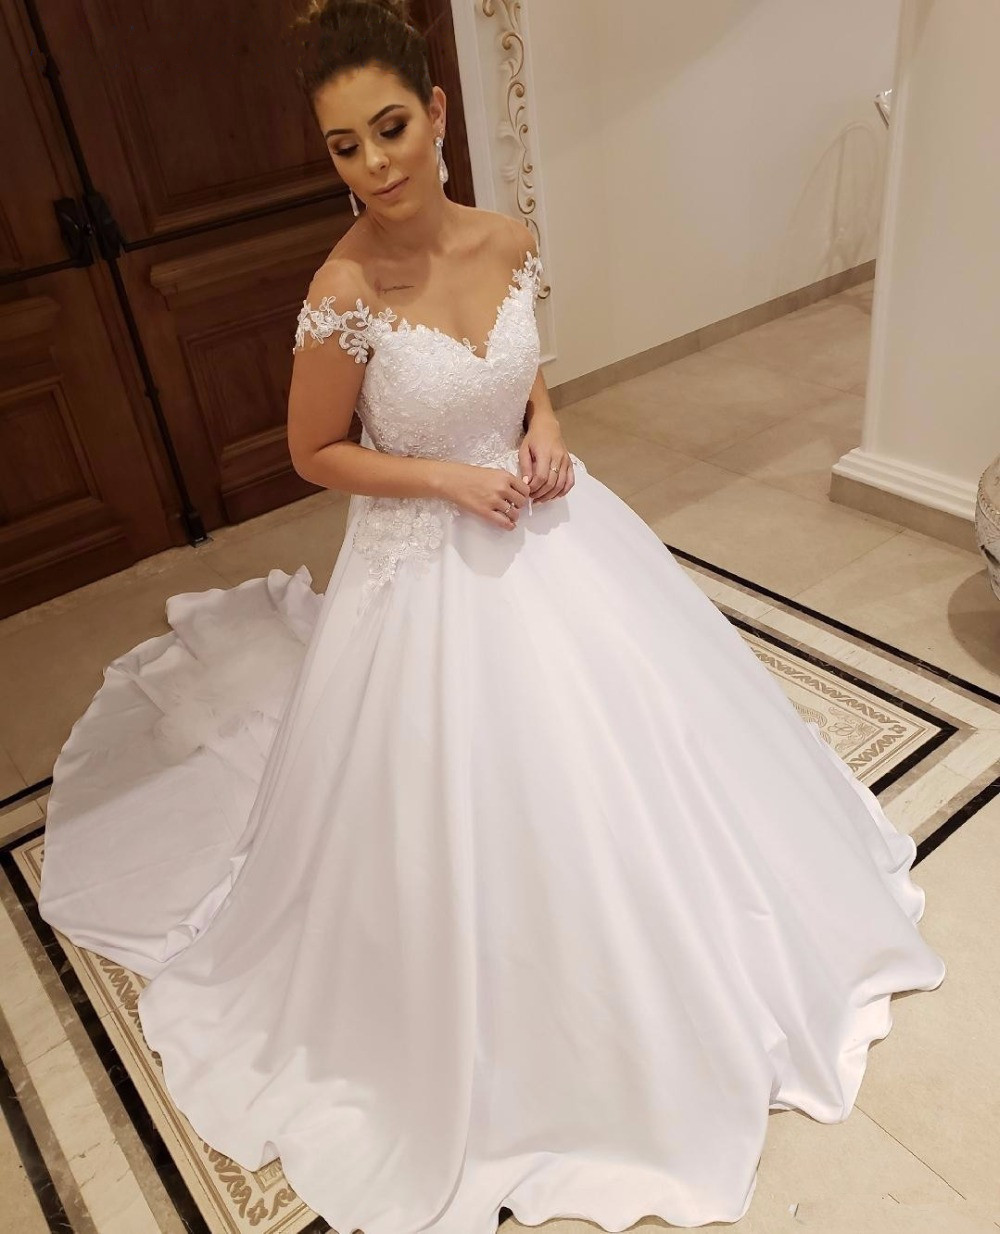 Robe de soiree Custom Cap Sleeves Lace Wedding Dress 2019 with Pearls Appliques Court Train Satin